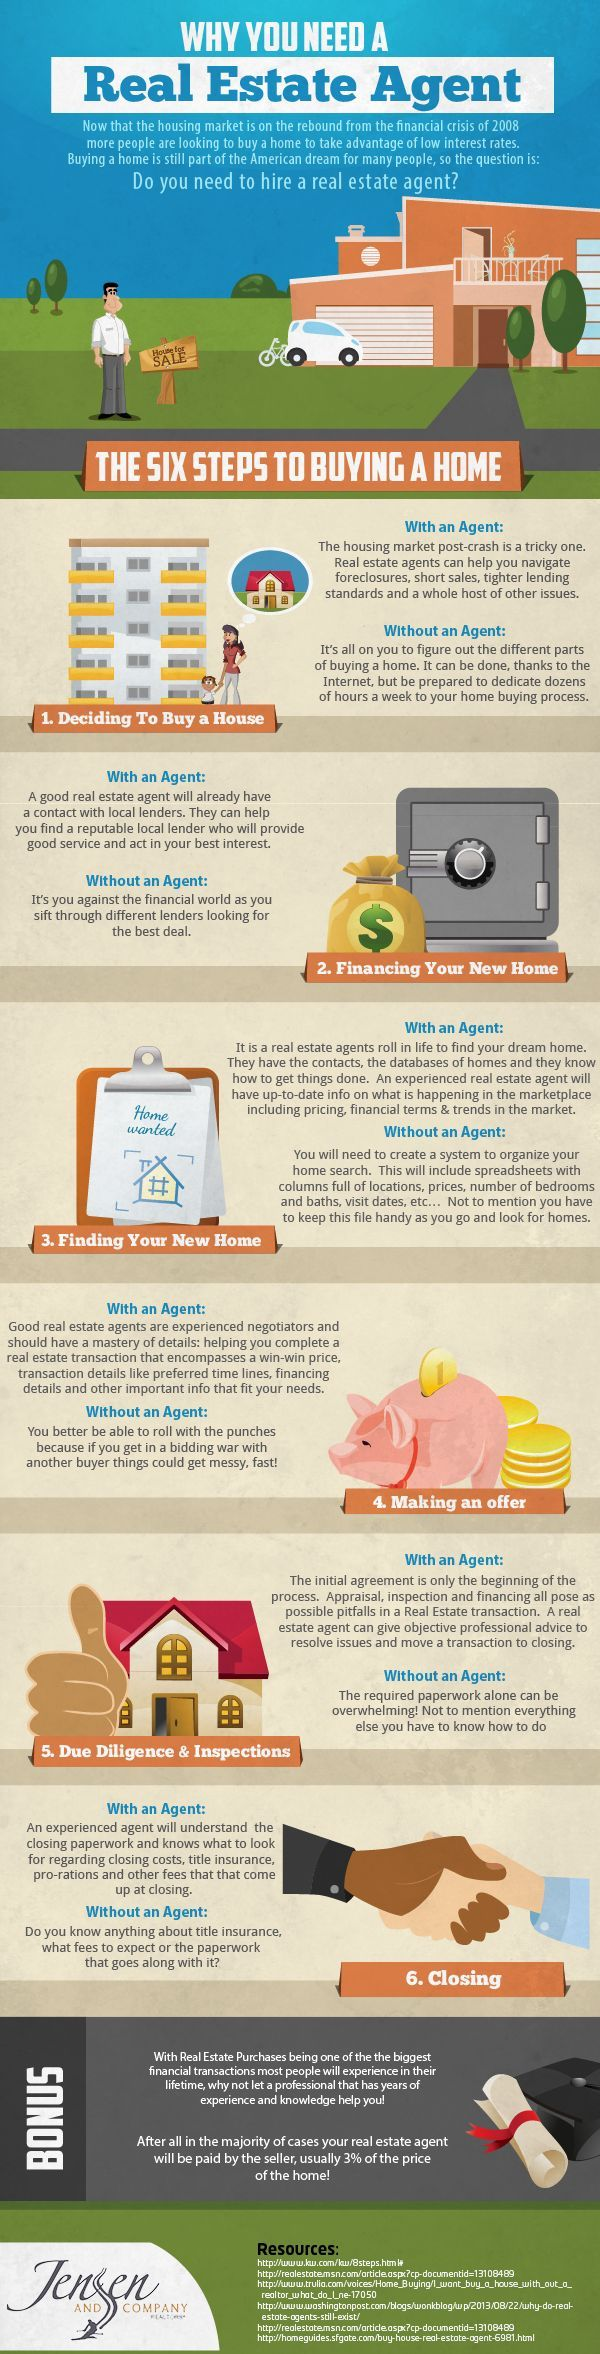 Why You Need A Real Estate Agentgraphic! I'm Going To Throw Out